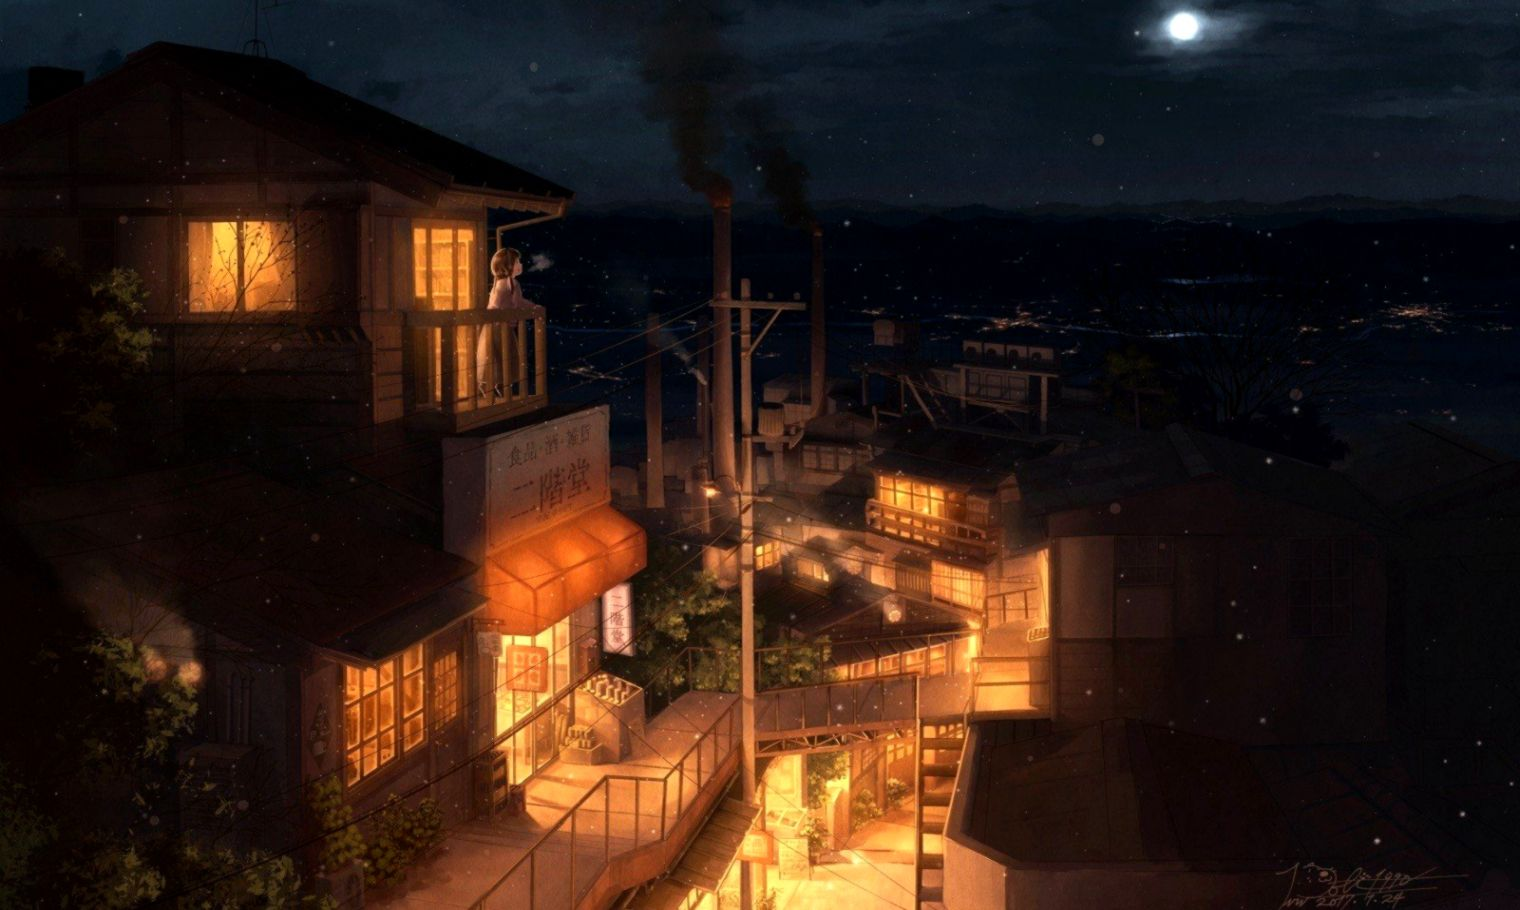 city building night industrial city moon anime anime girls